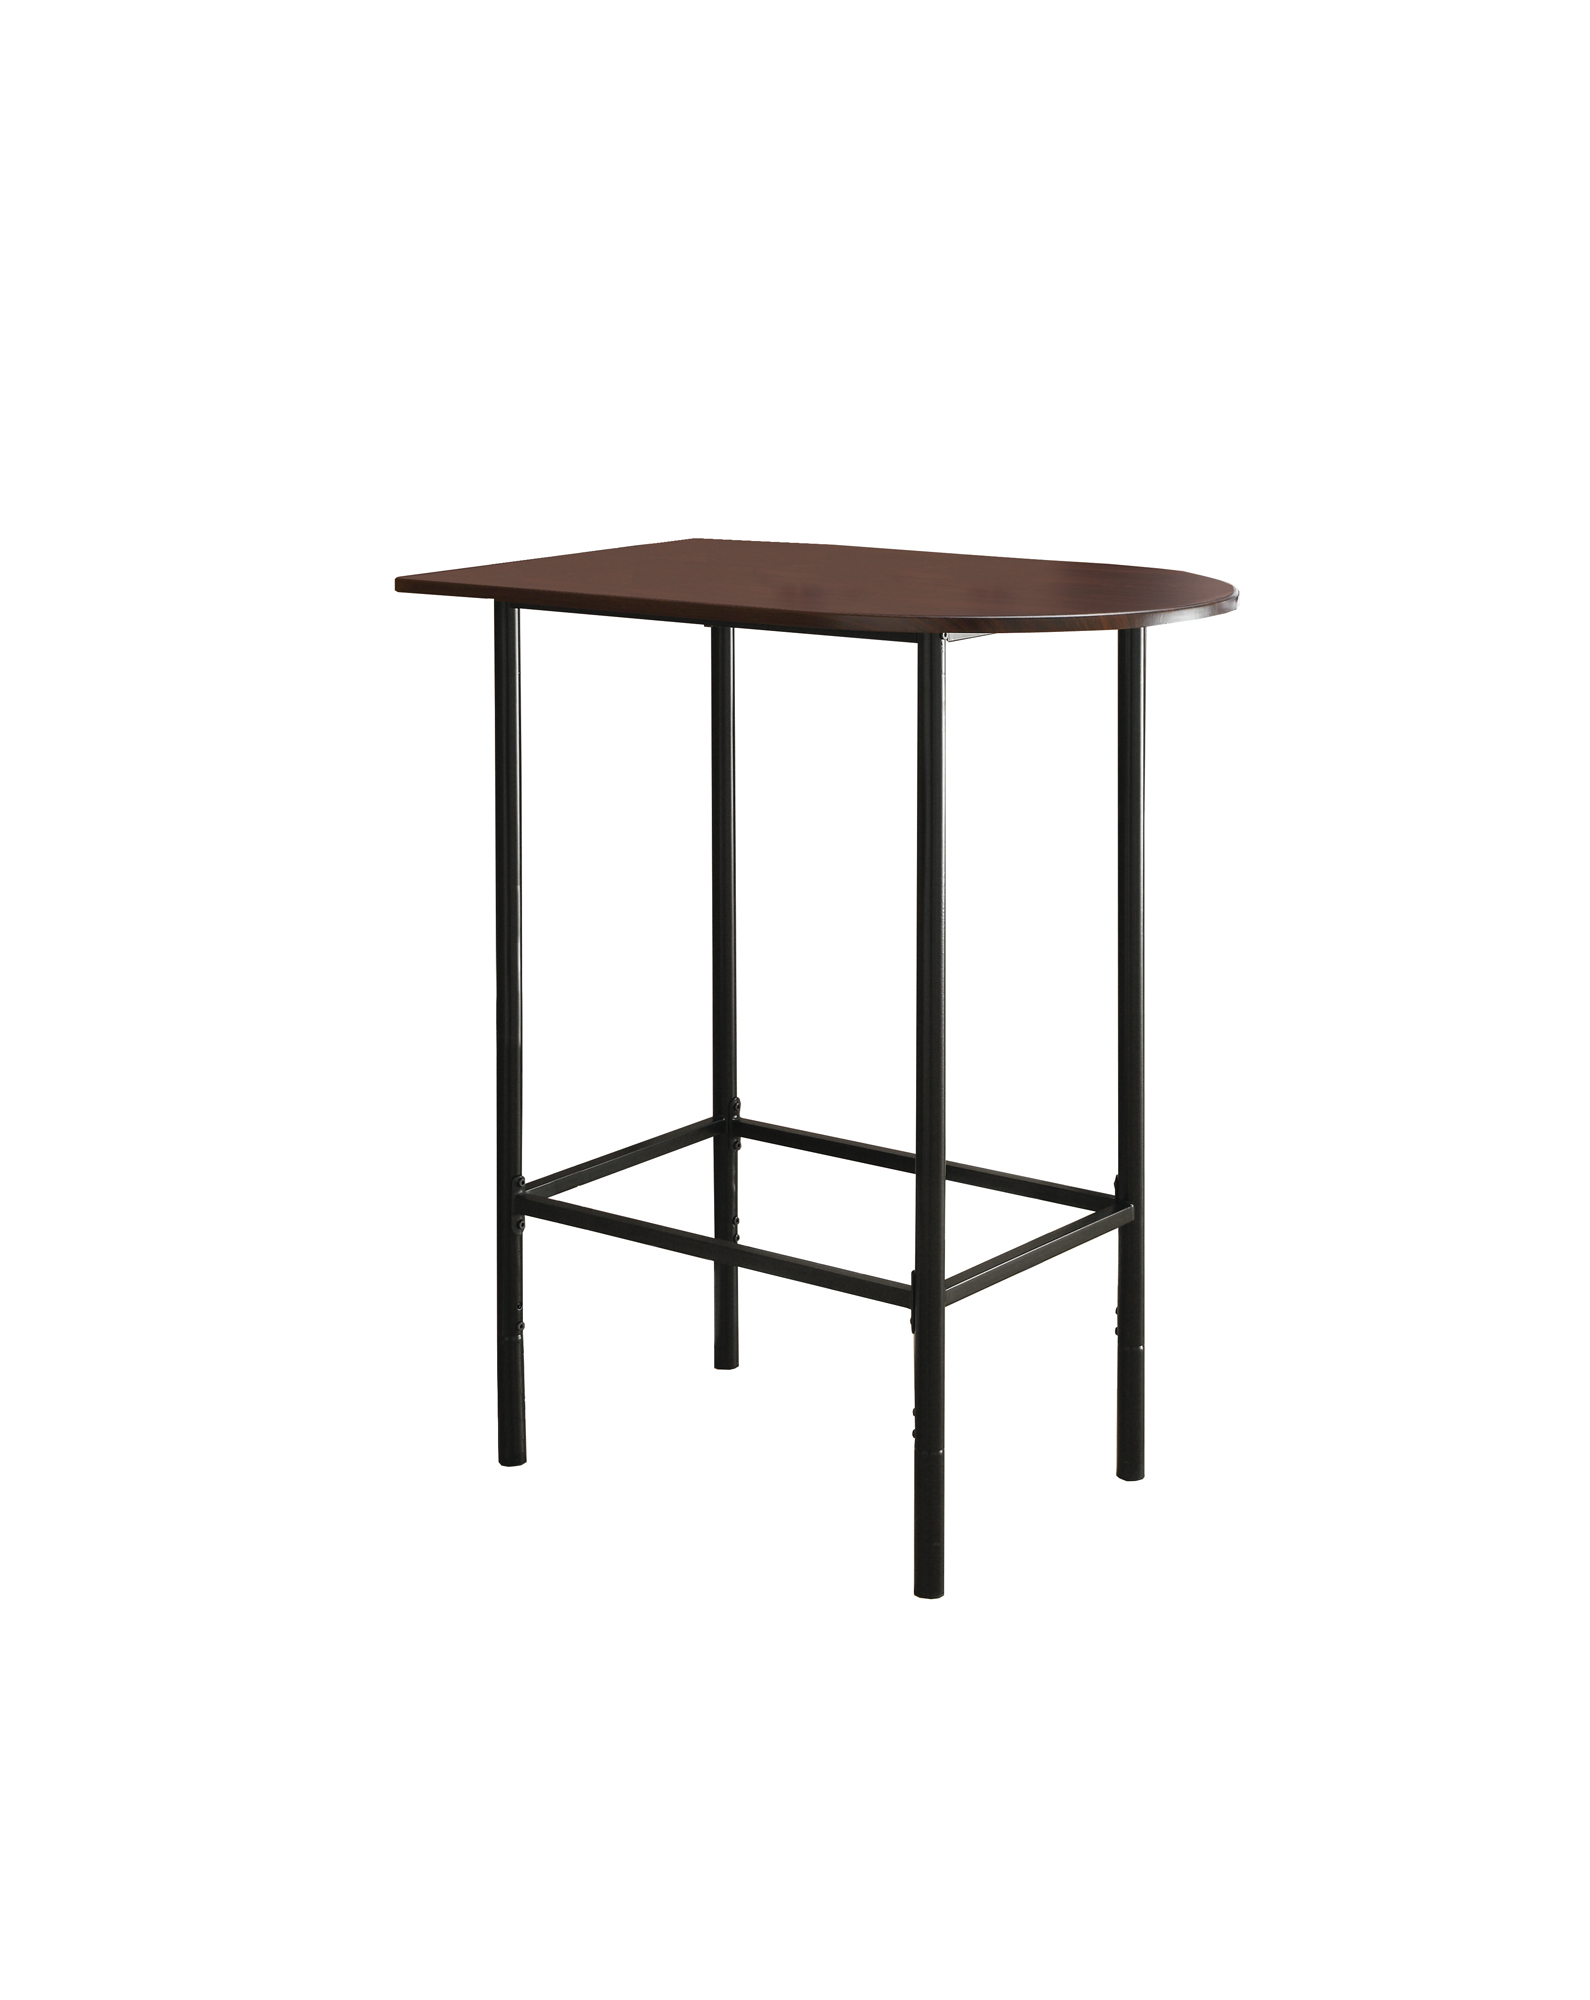 "Monarch 36"" x 24"" Rectangular Space Saver Wood Grain Top Metal Framed Home Bar Height Table - Cappuccino Brown / Black Finish from Monarch"